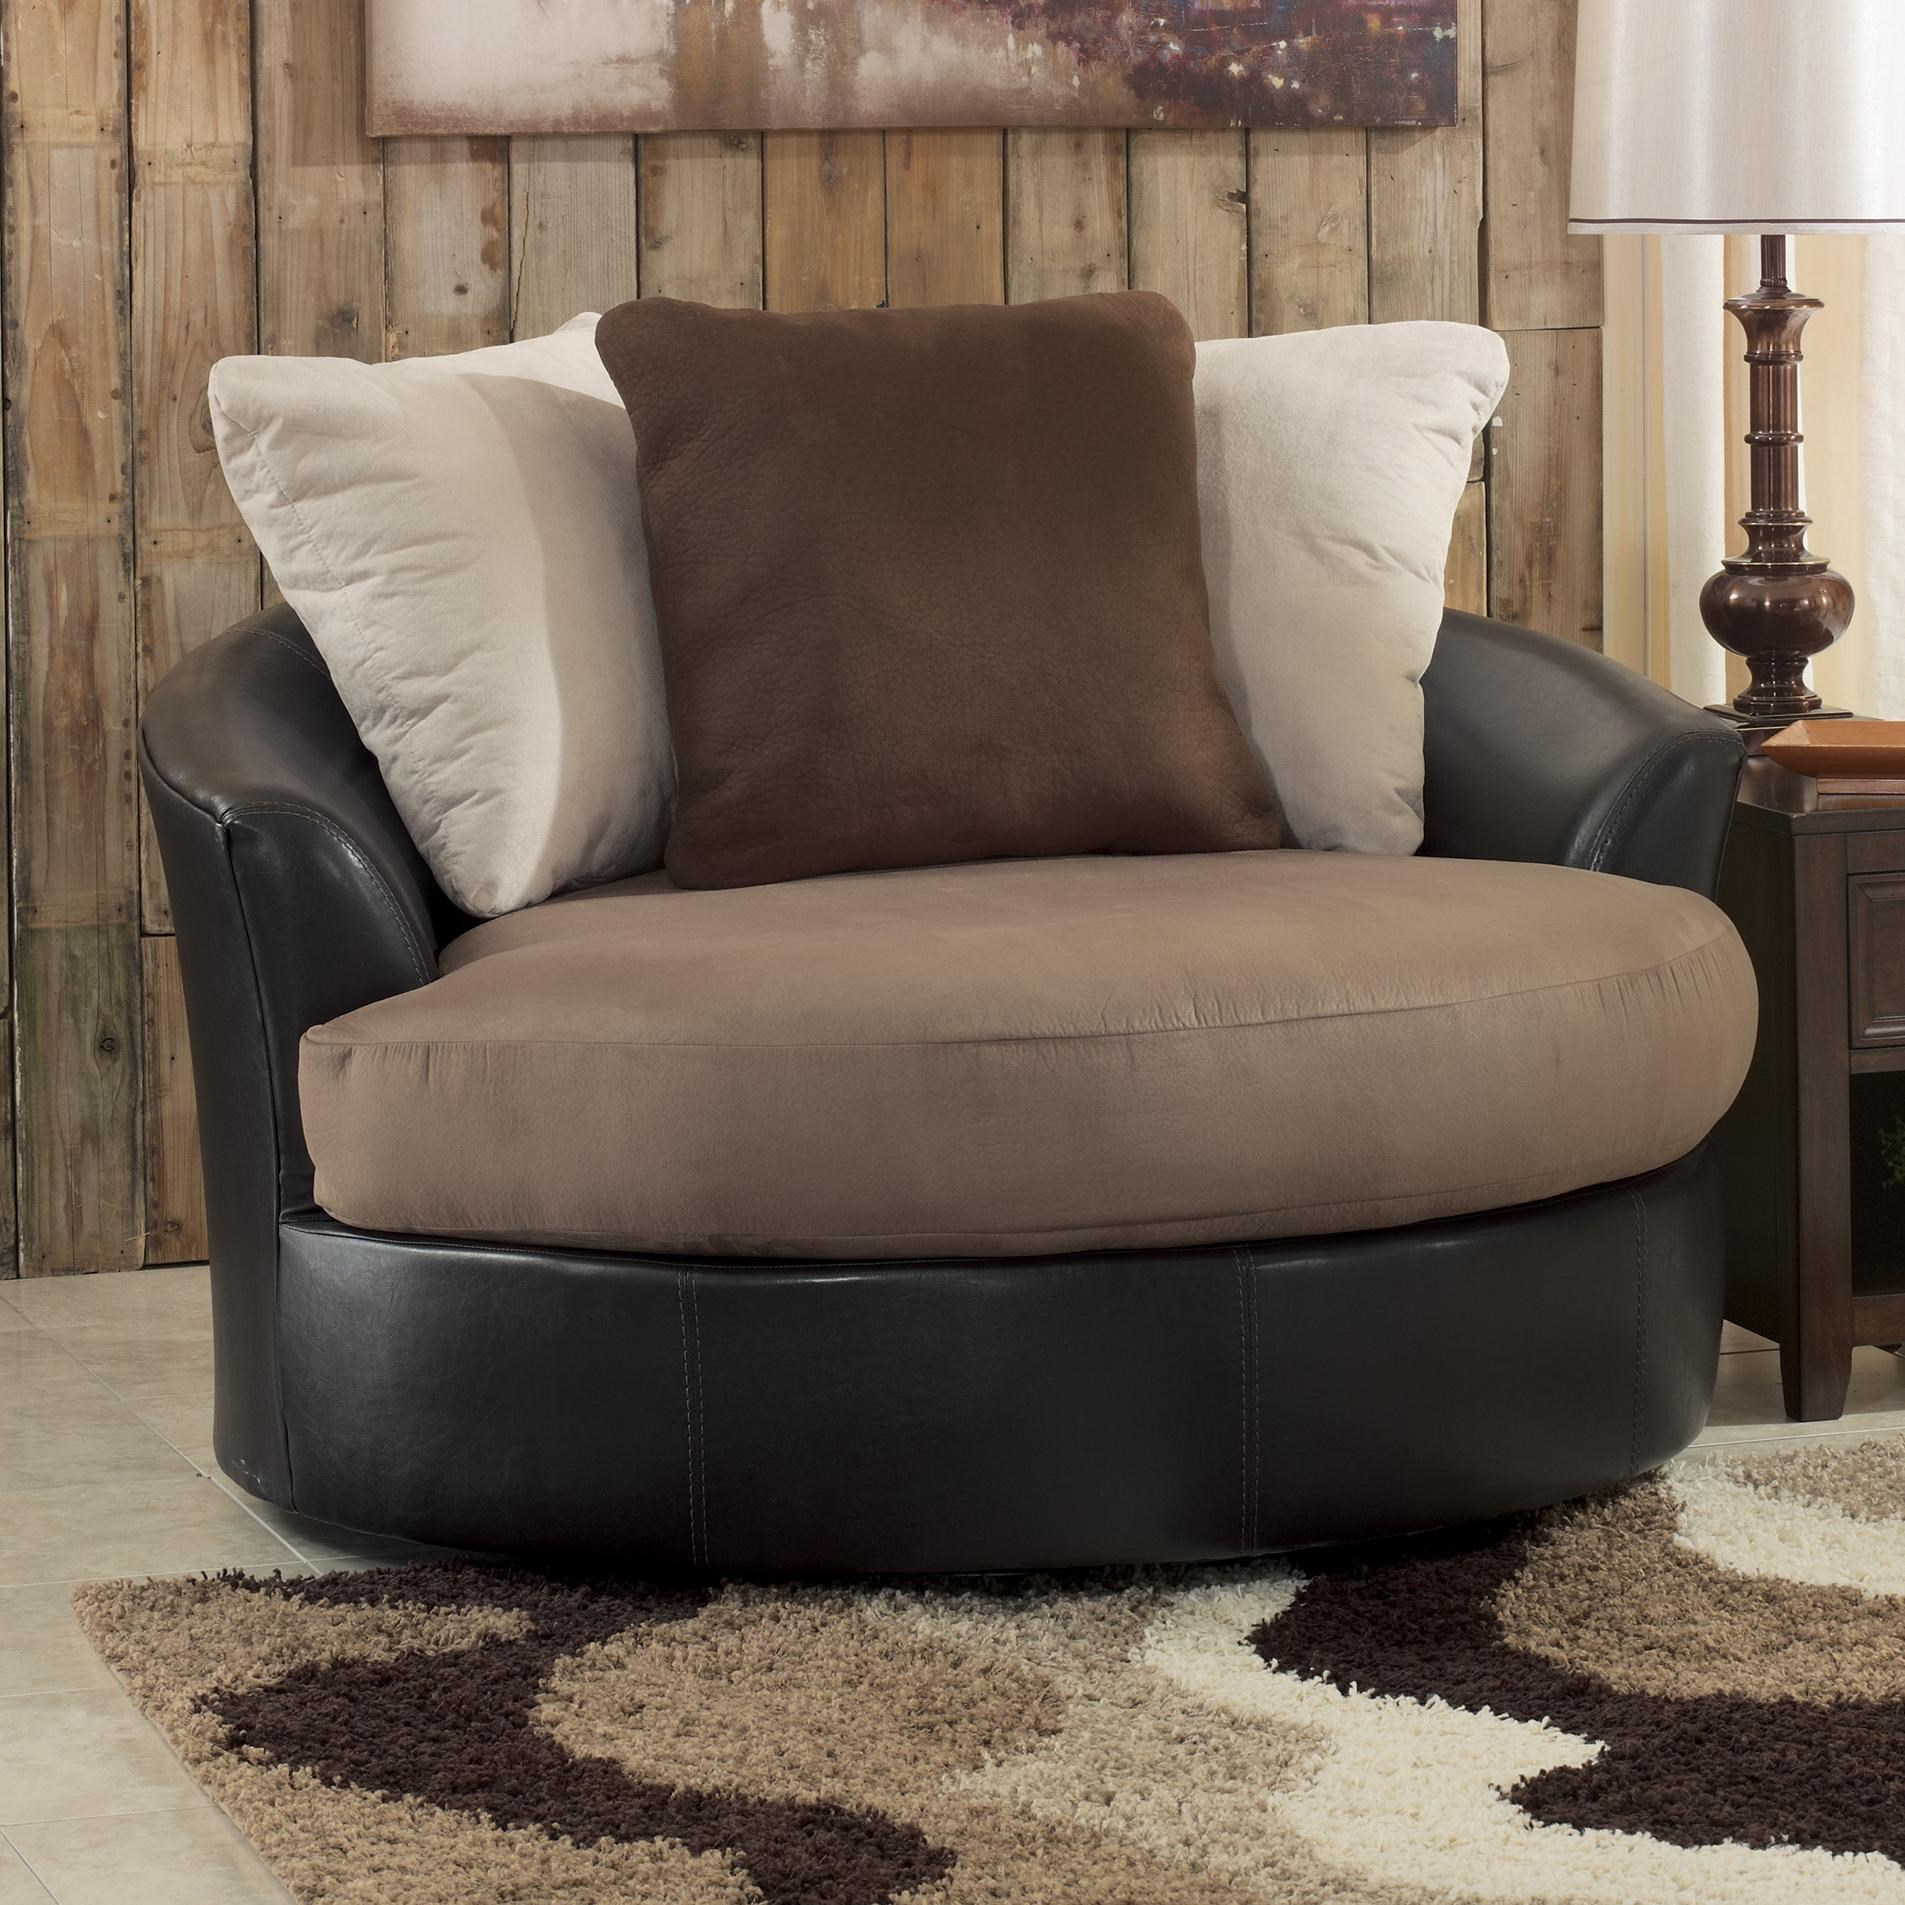 Black oversized swivel accent chair - Benchcraft Masoli Mocha Oversized Swivel Accent Chair